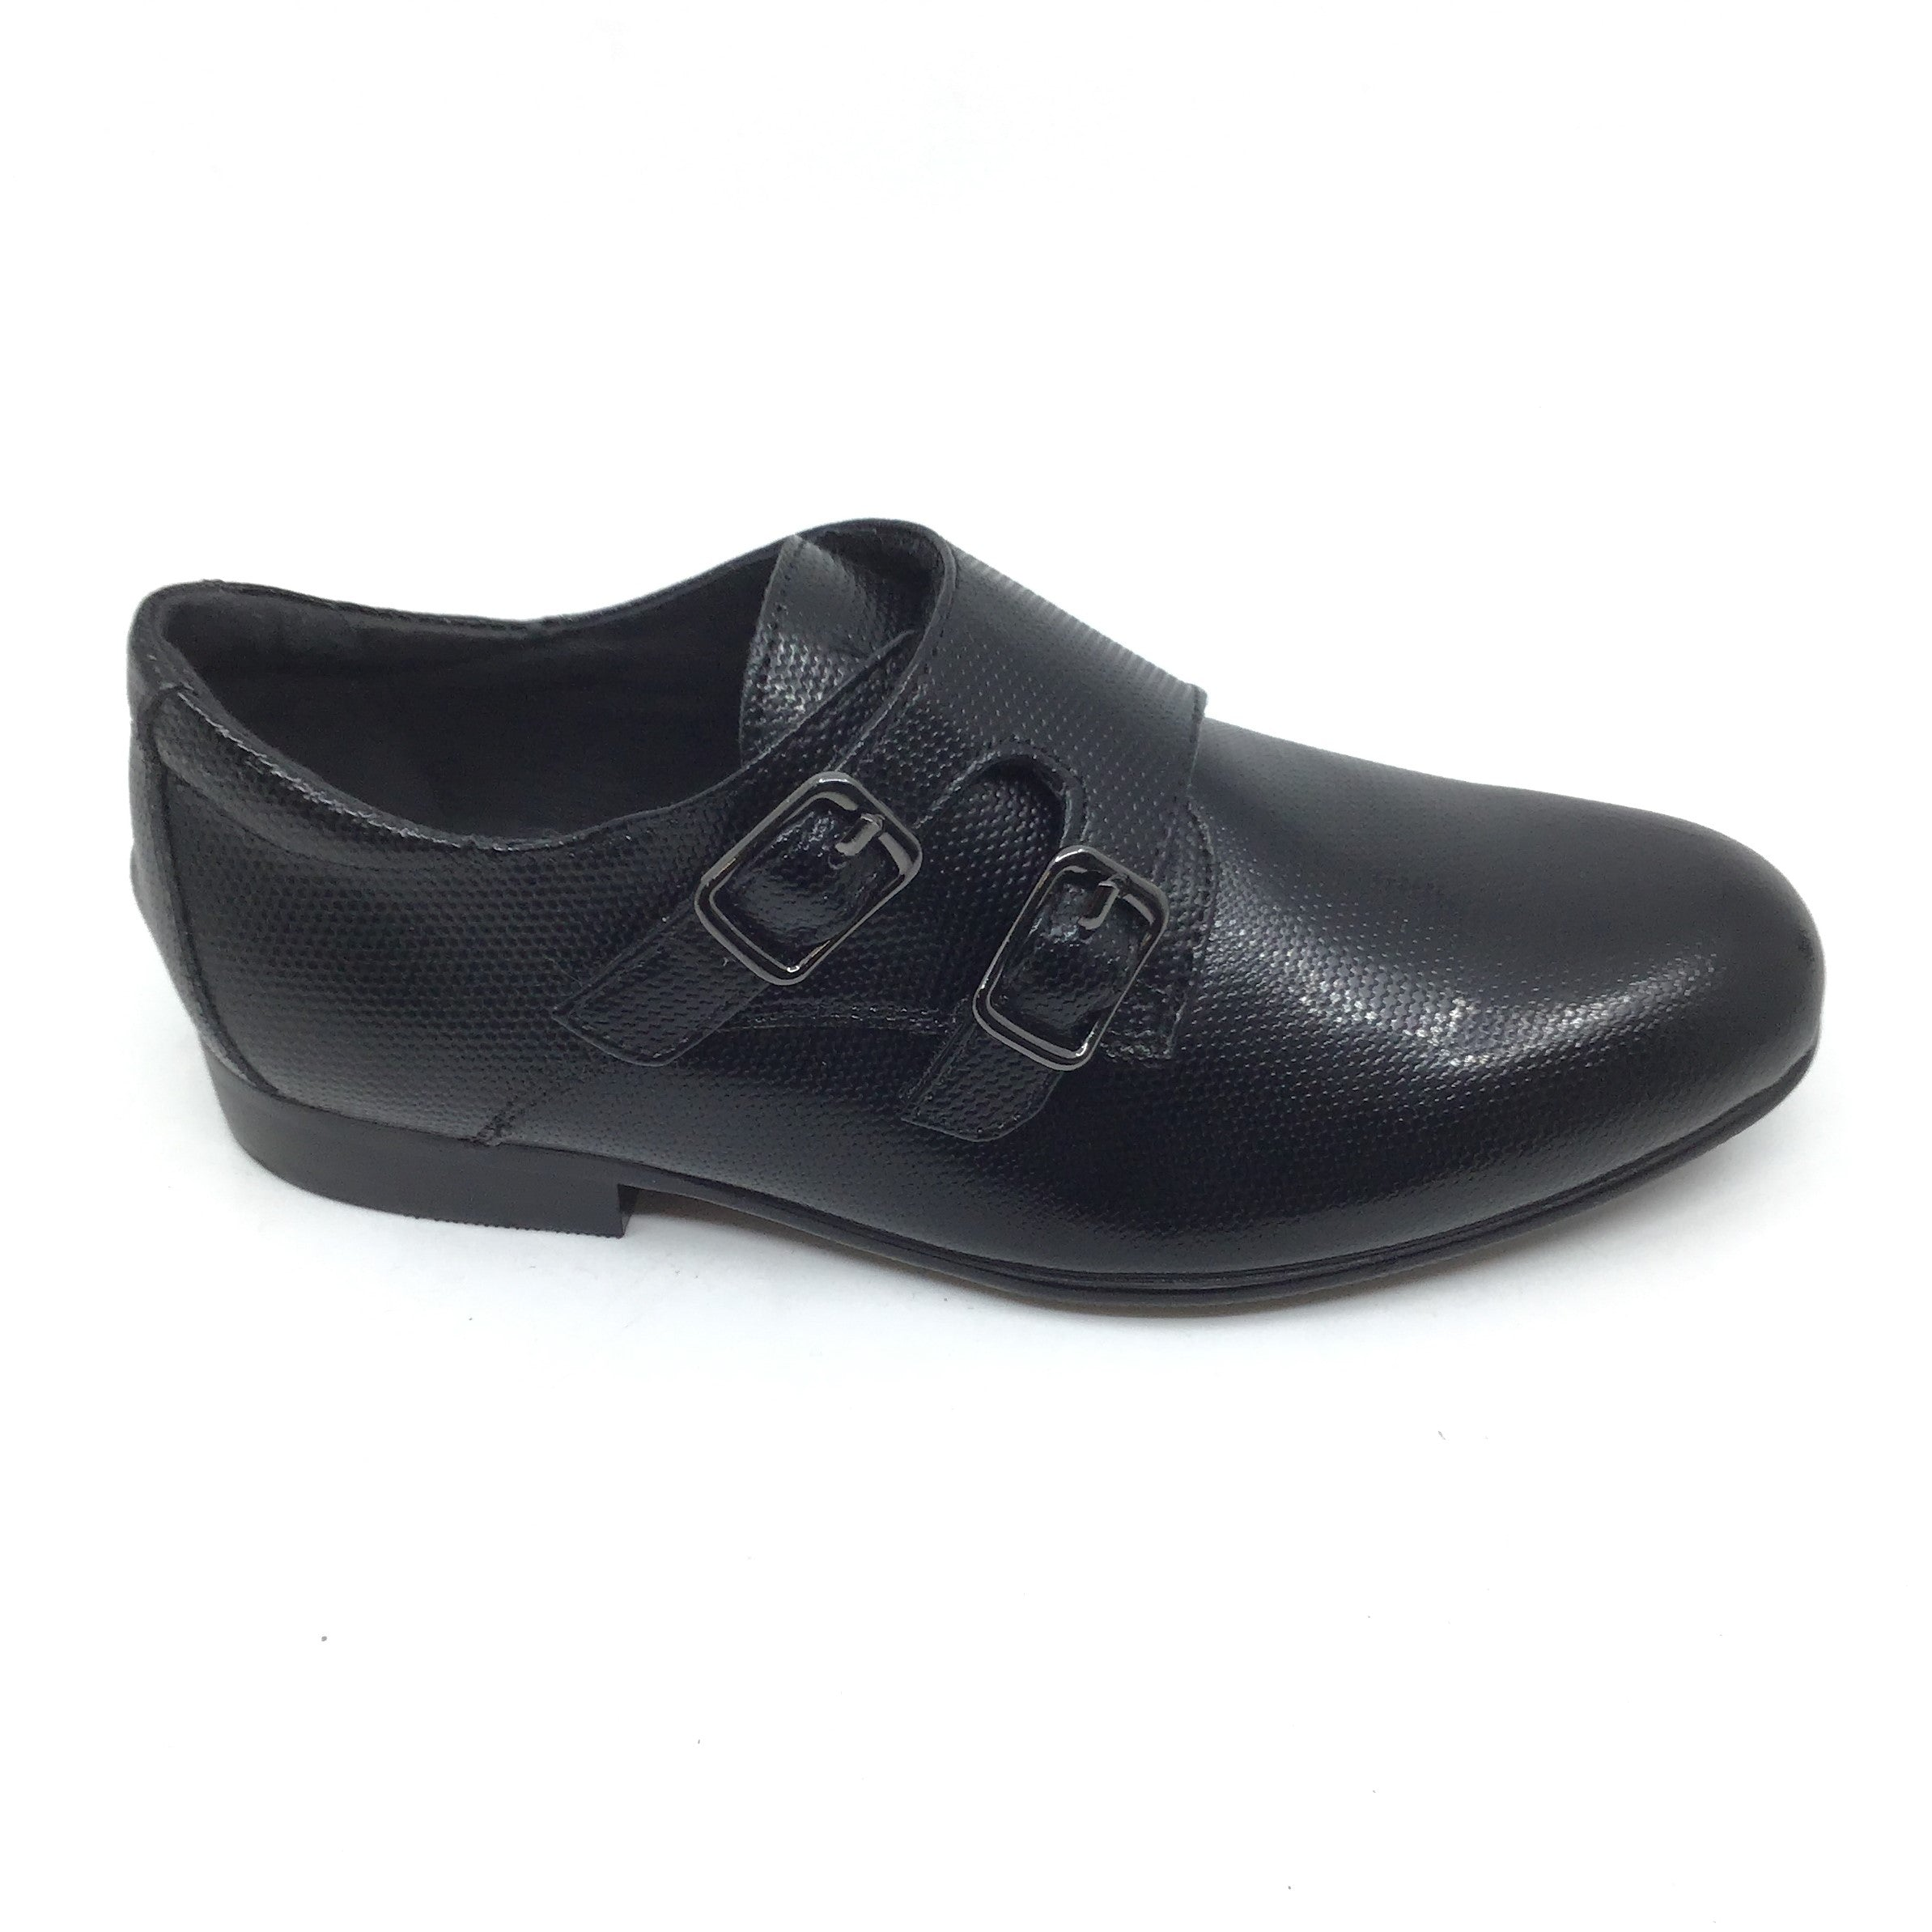 Venettini Black Textured Leather with Double Buckle